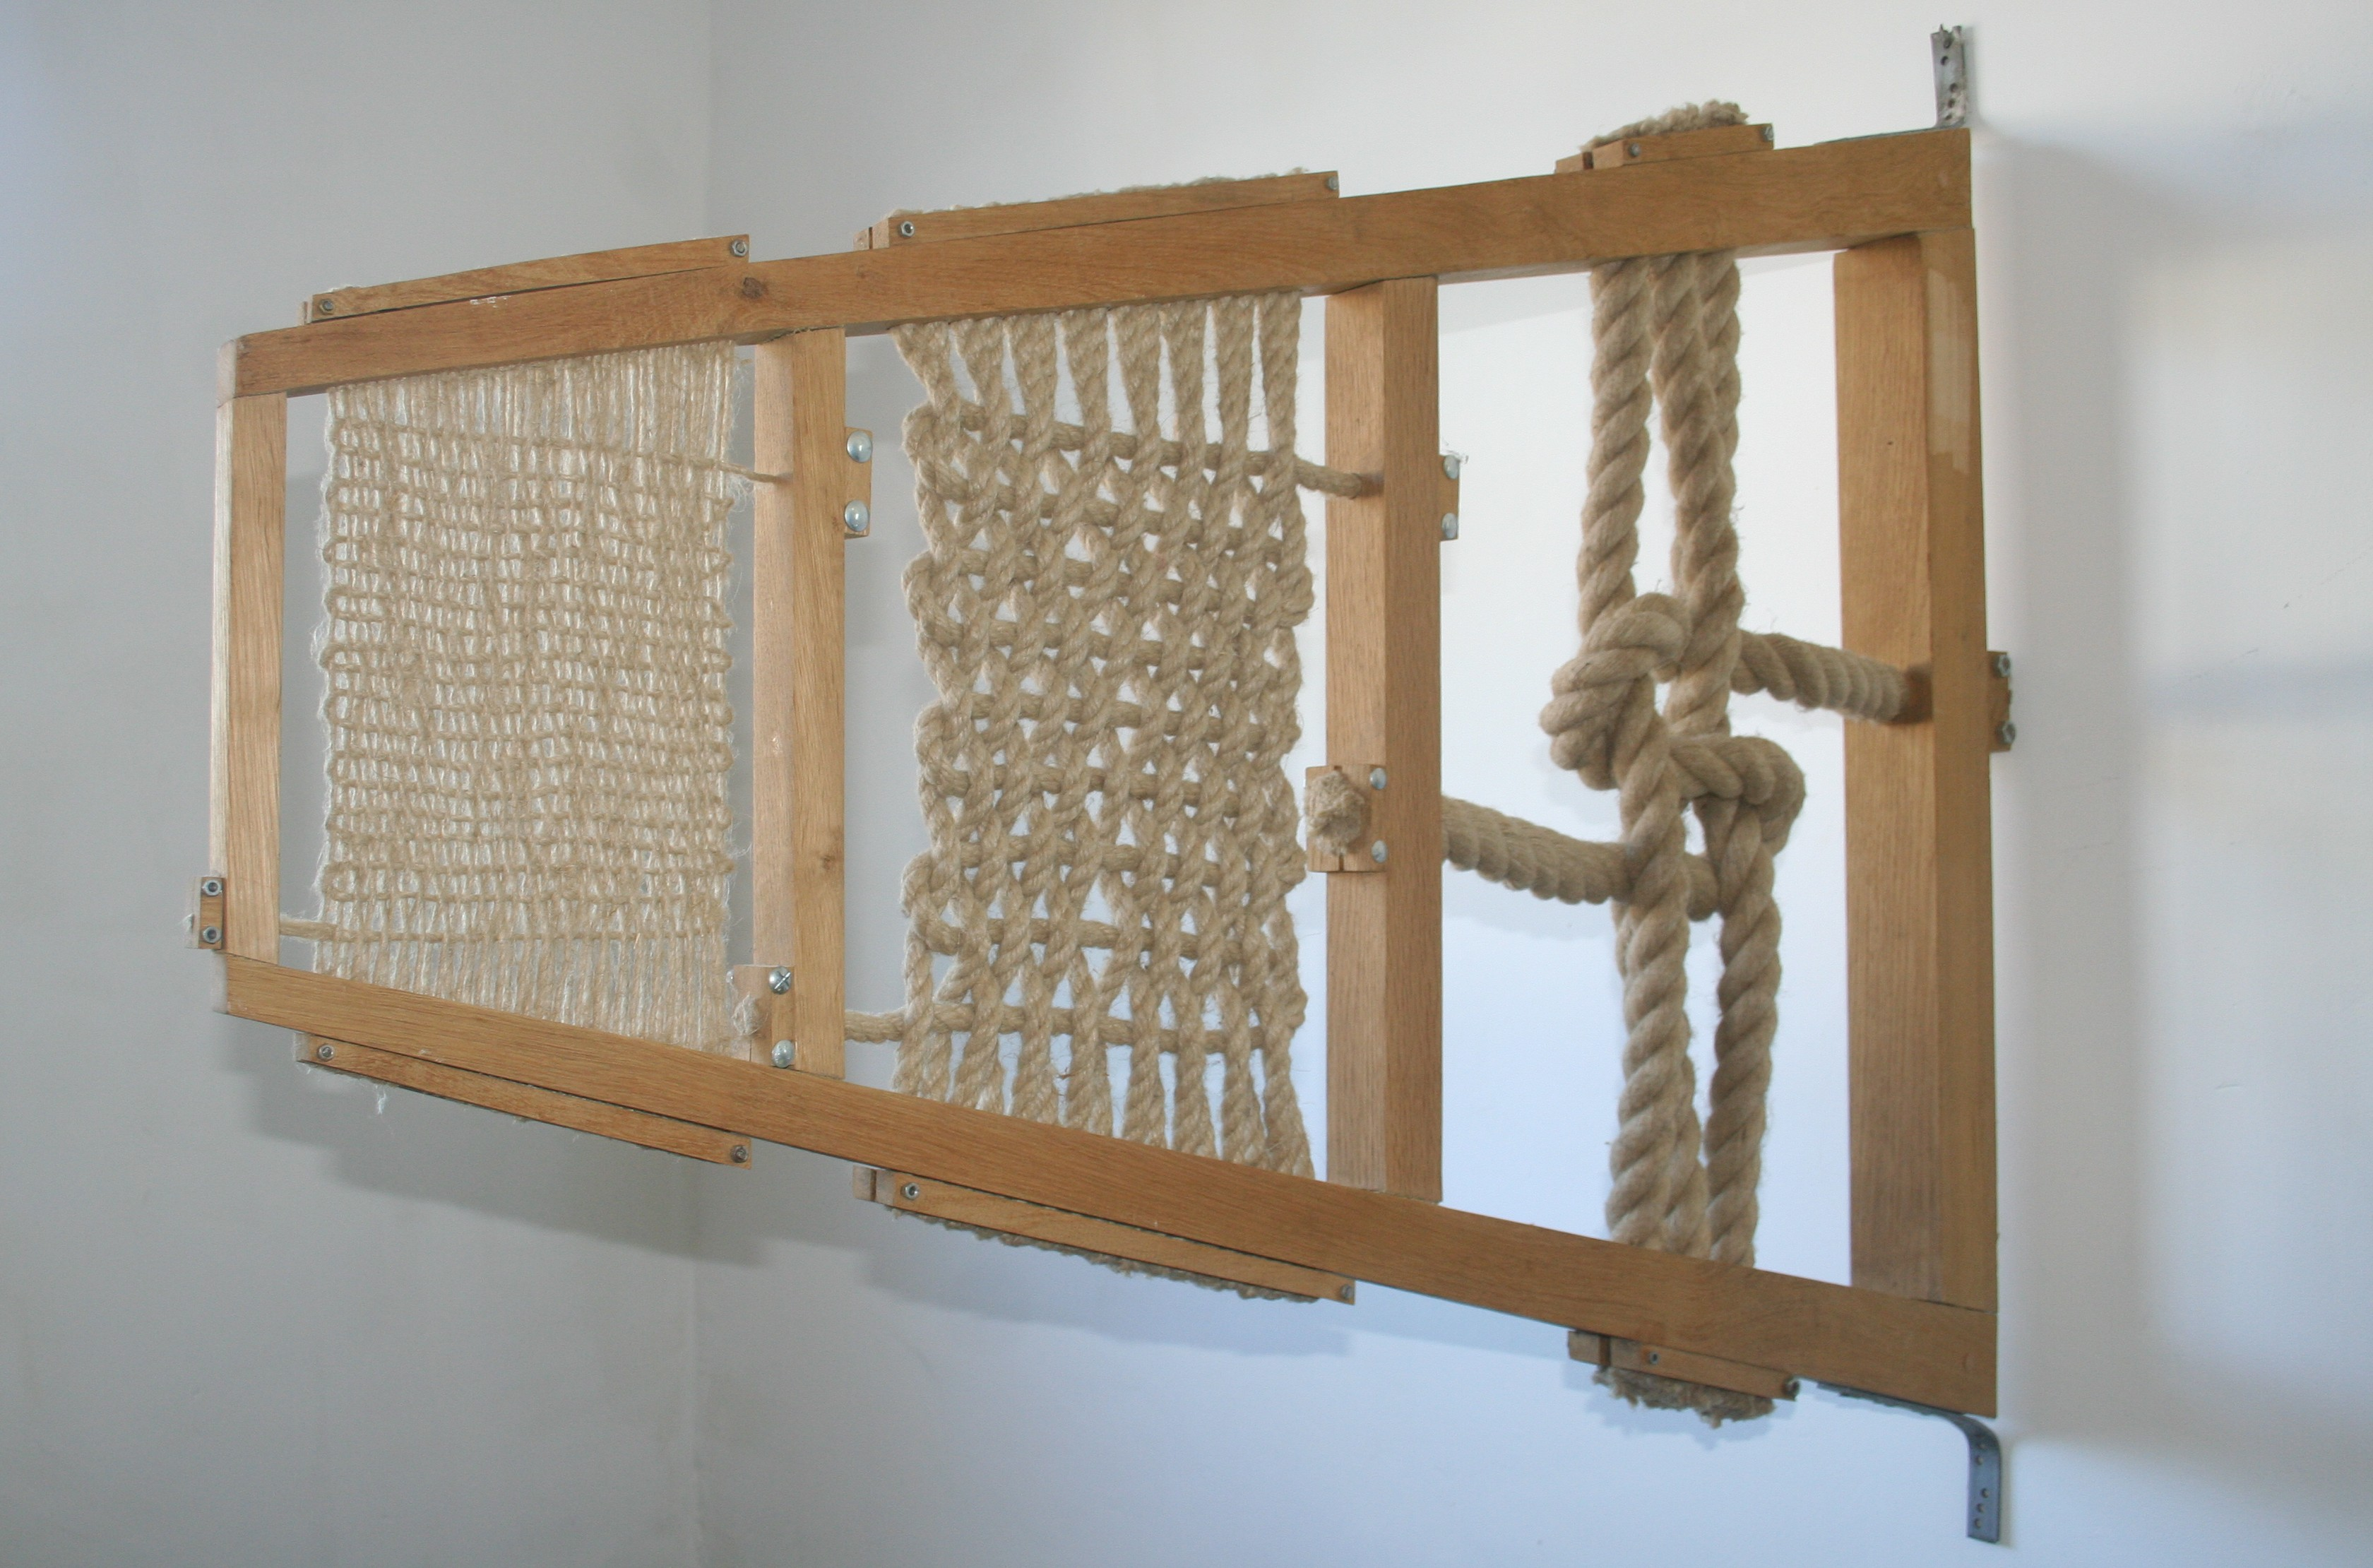 cloths - 2011 - hemp rope; wood